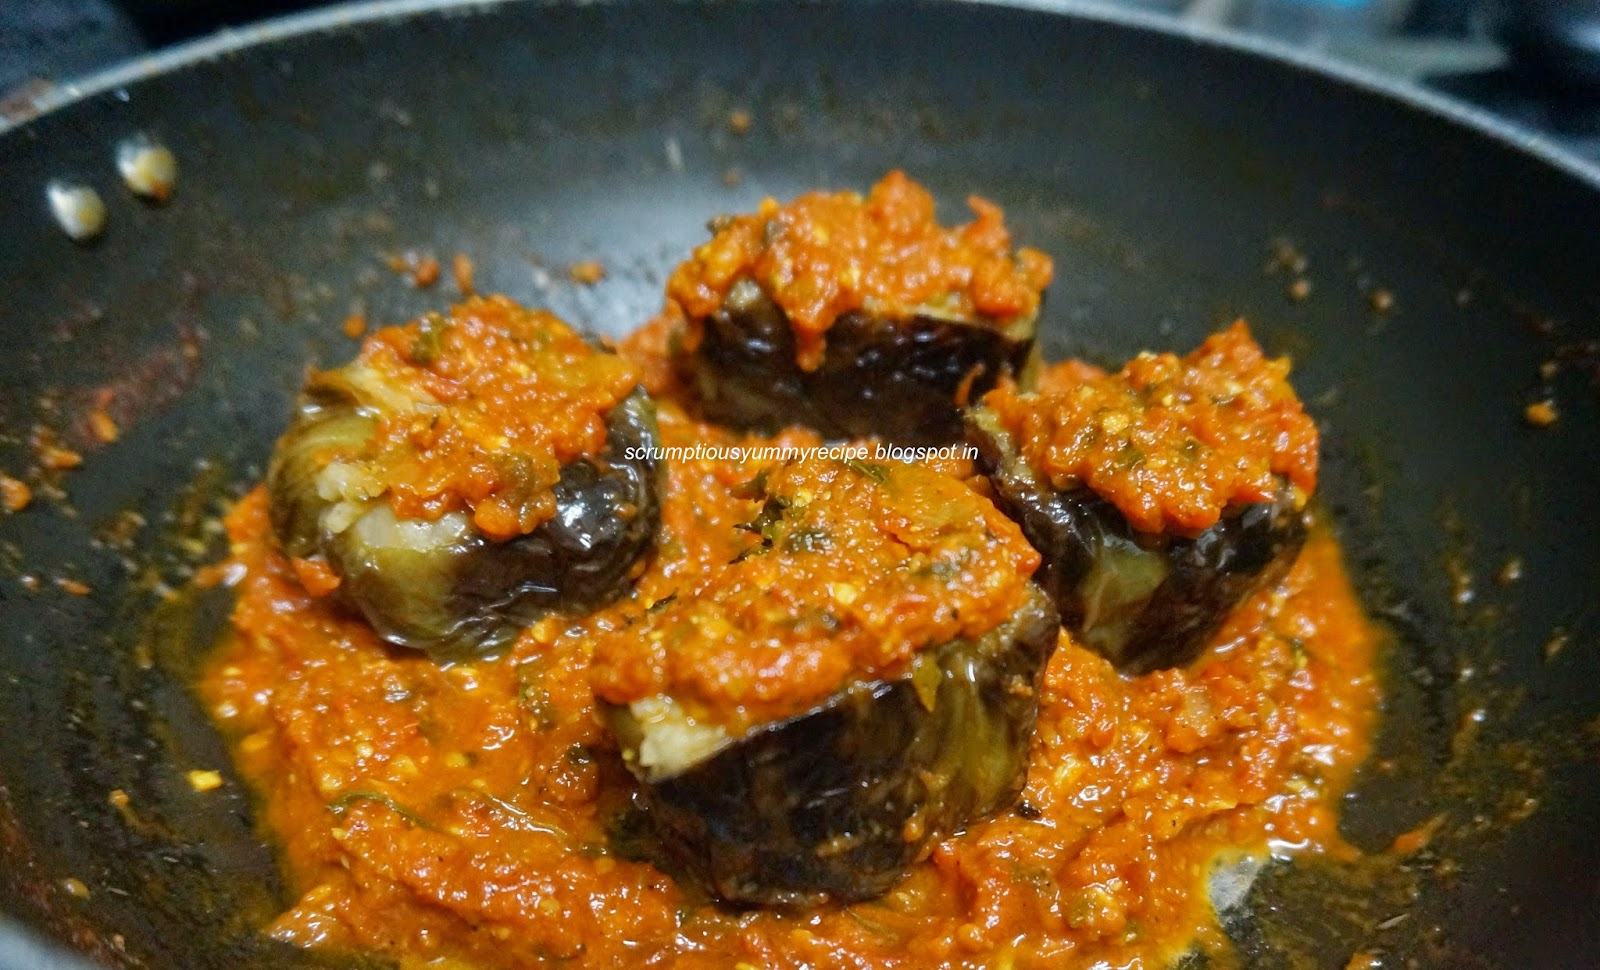 Stuffed capsicum with potato filling, Bharwa shimla mirch, stuffed bell pepper